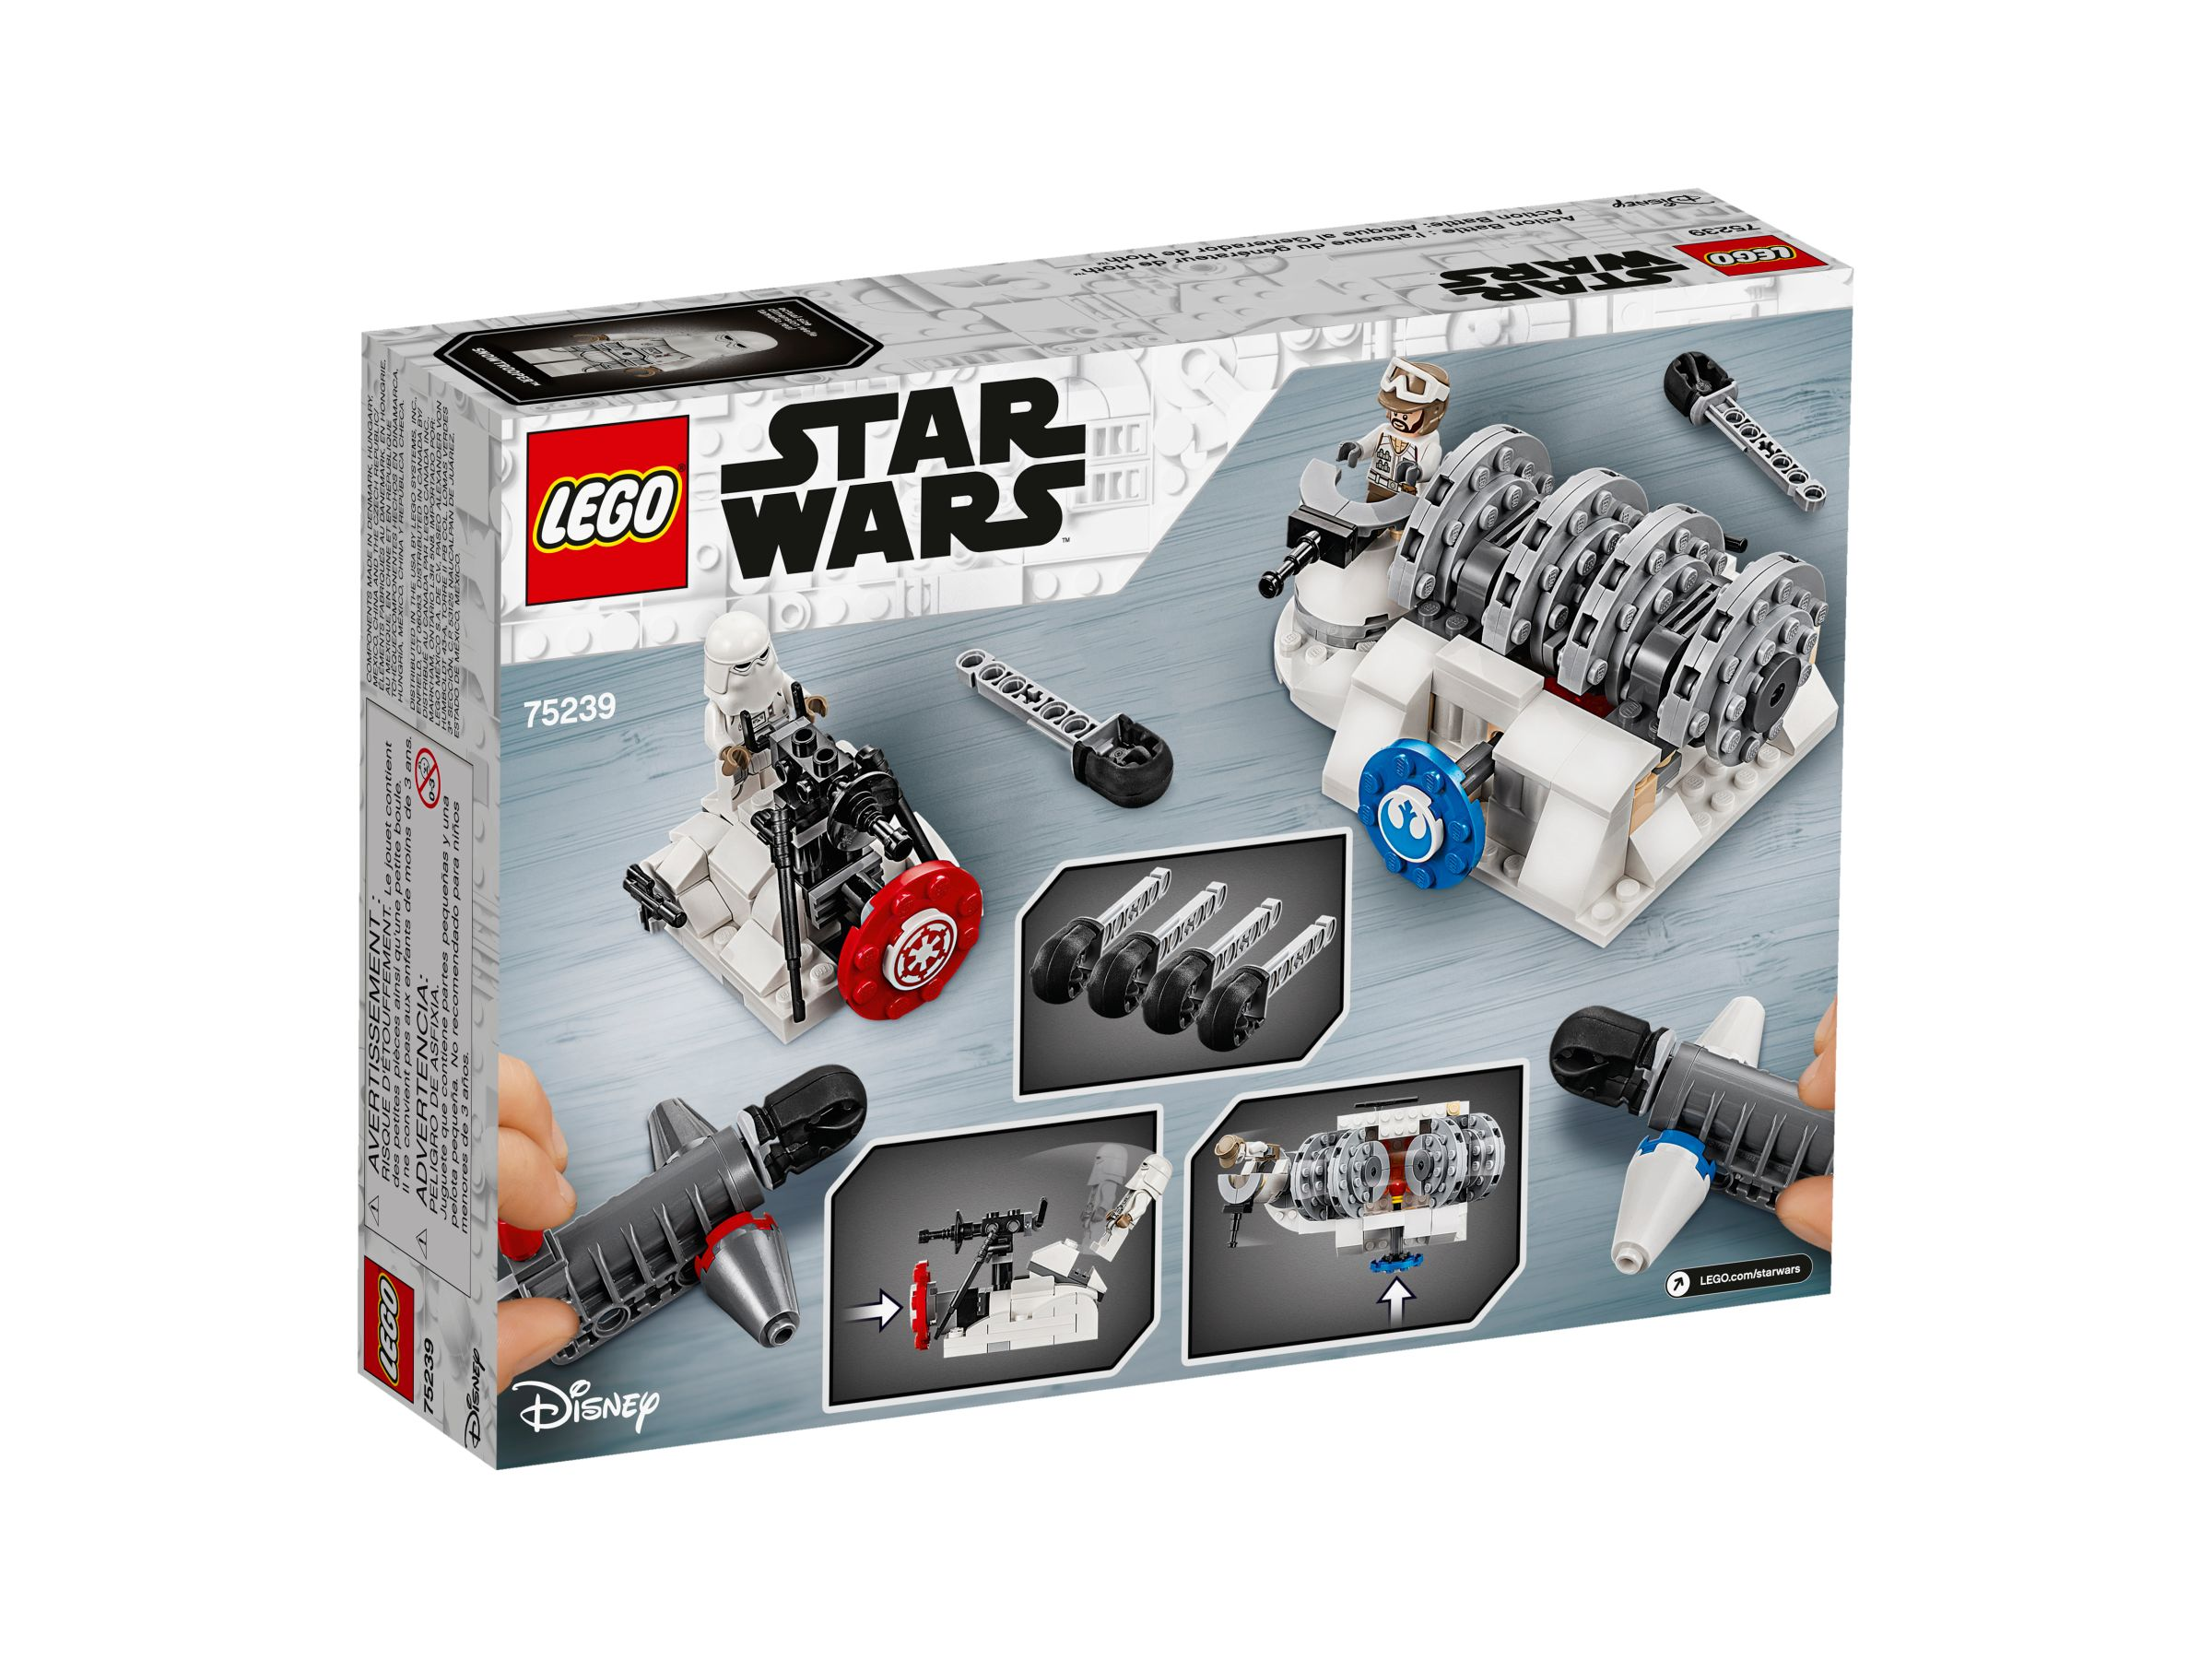 LEGO Star Wars 75239 Action Battle Hoth™ Generator-Attacke LEGO_75239_alt4.jpg